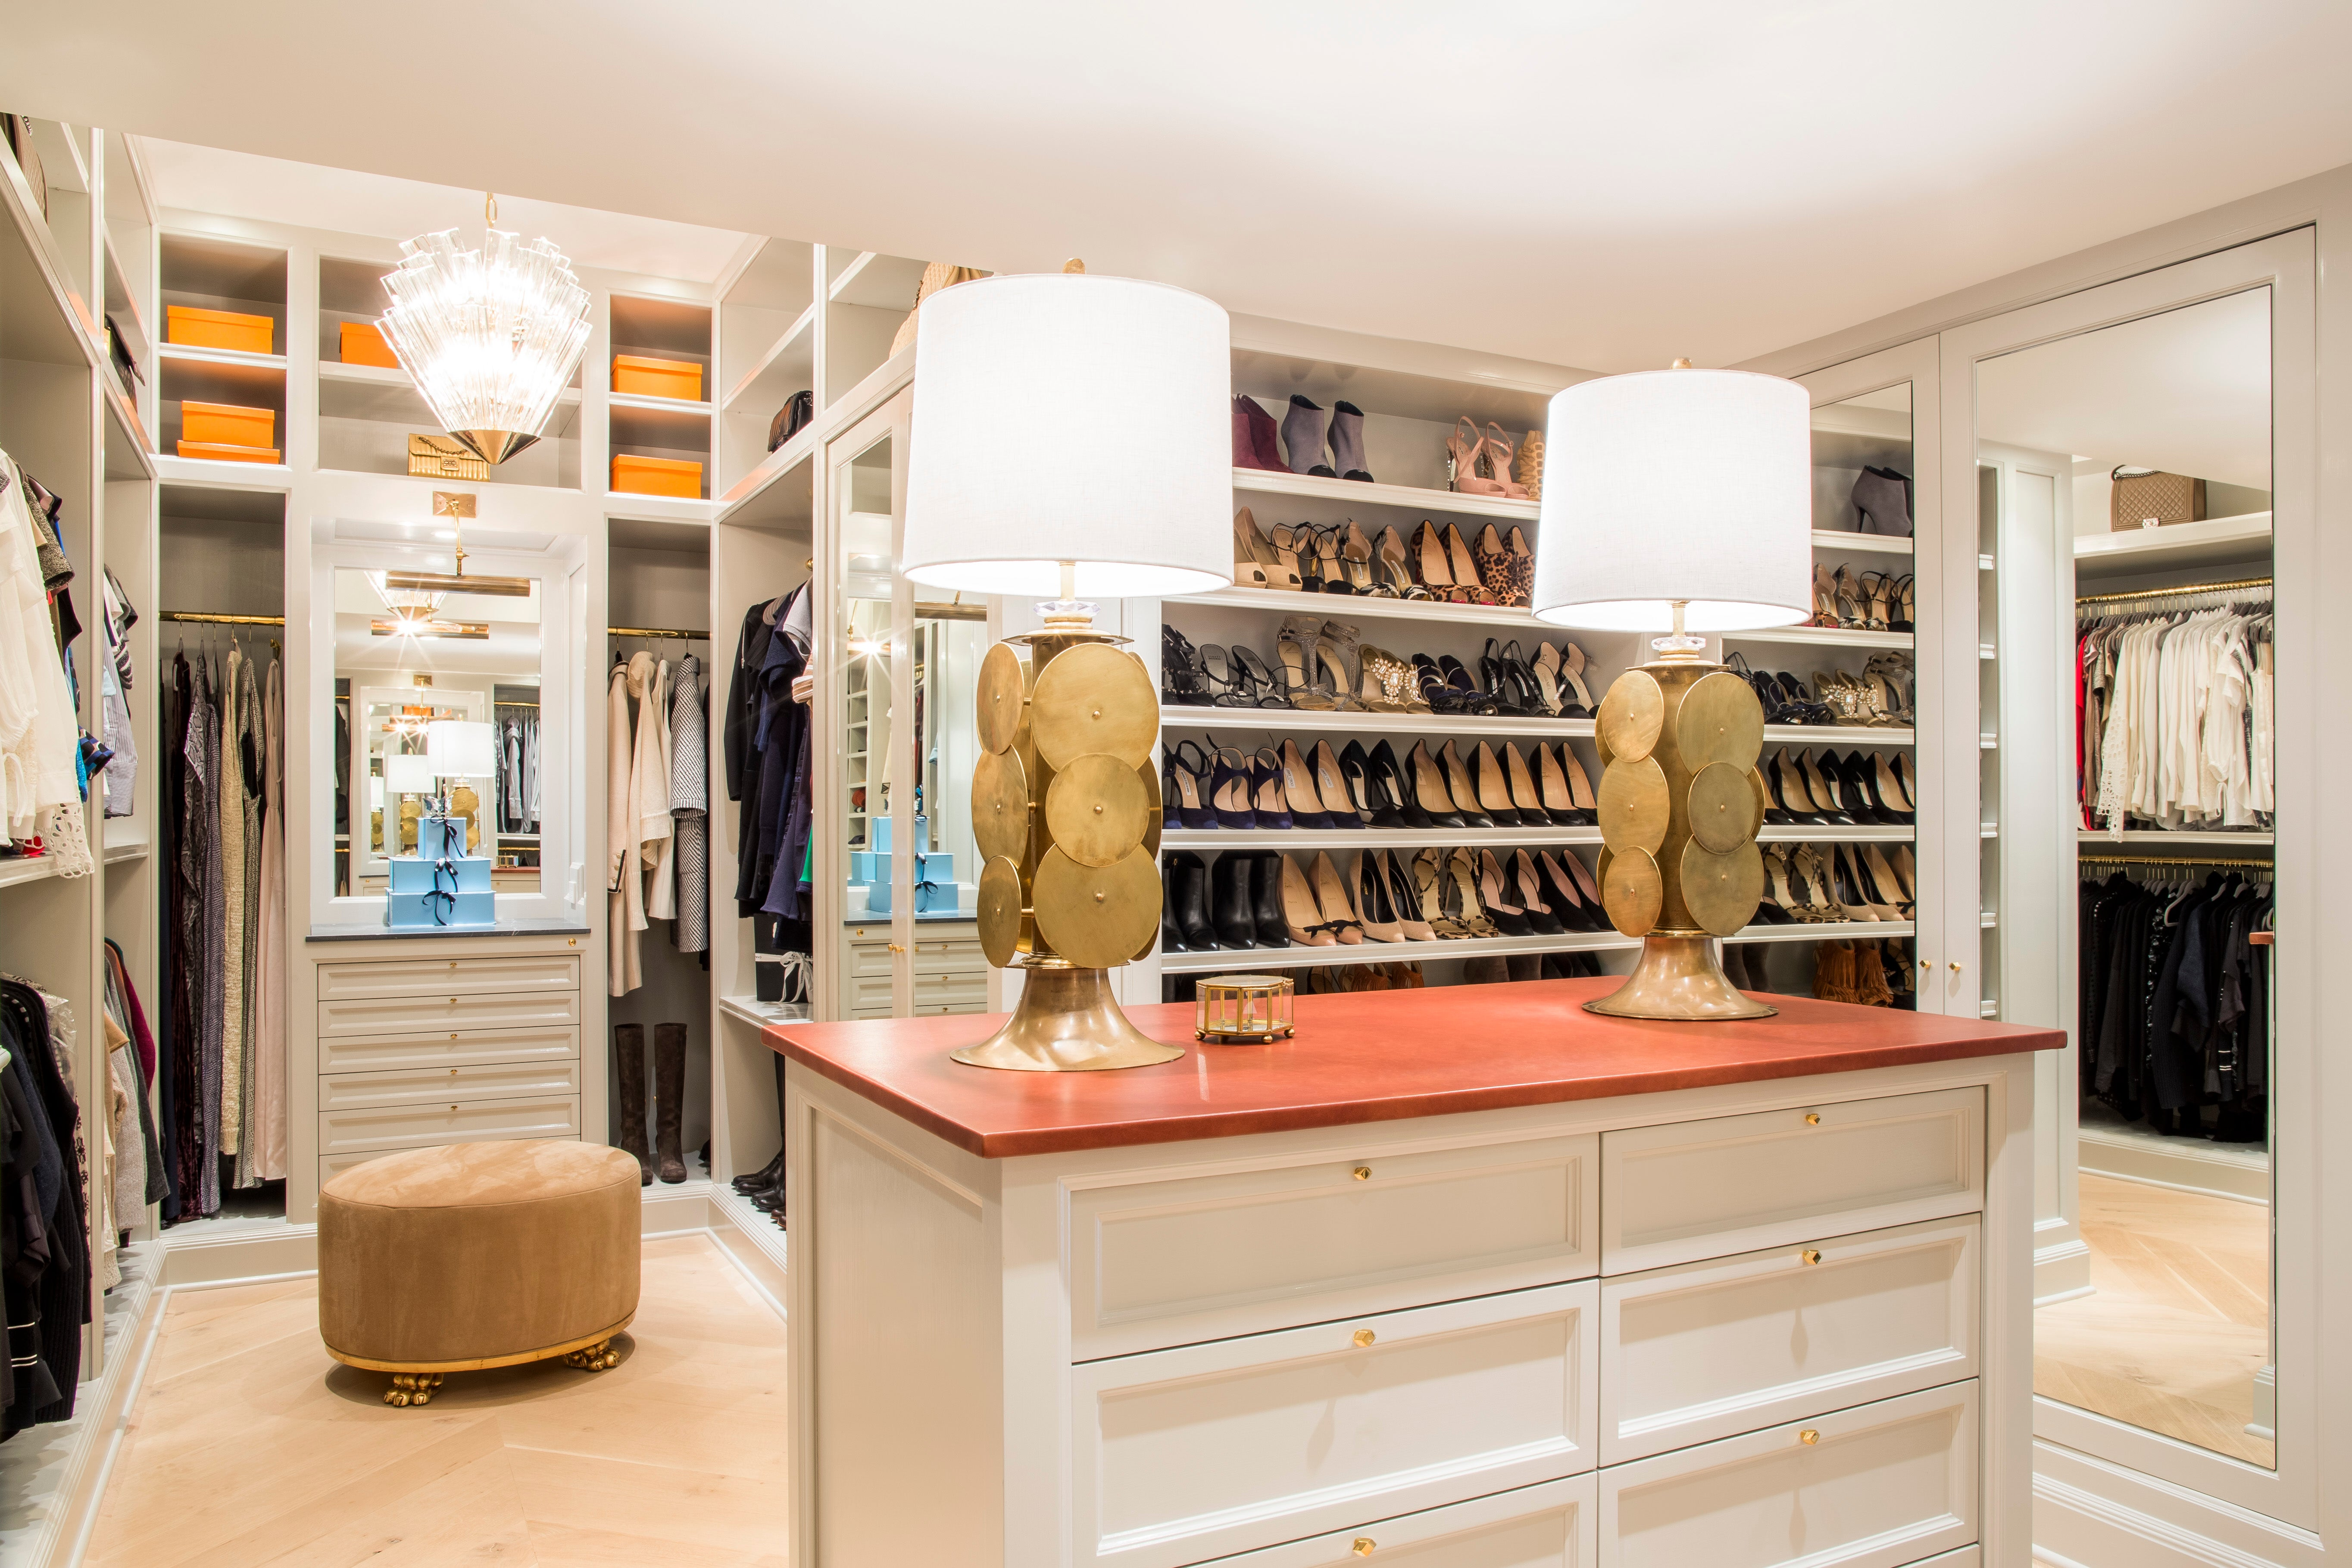 Seattle Home & Storage Room and Closet Design Ideas u0026 Pictures on 1stdibs